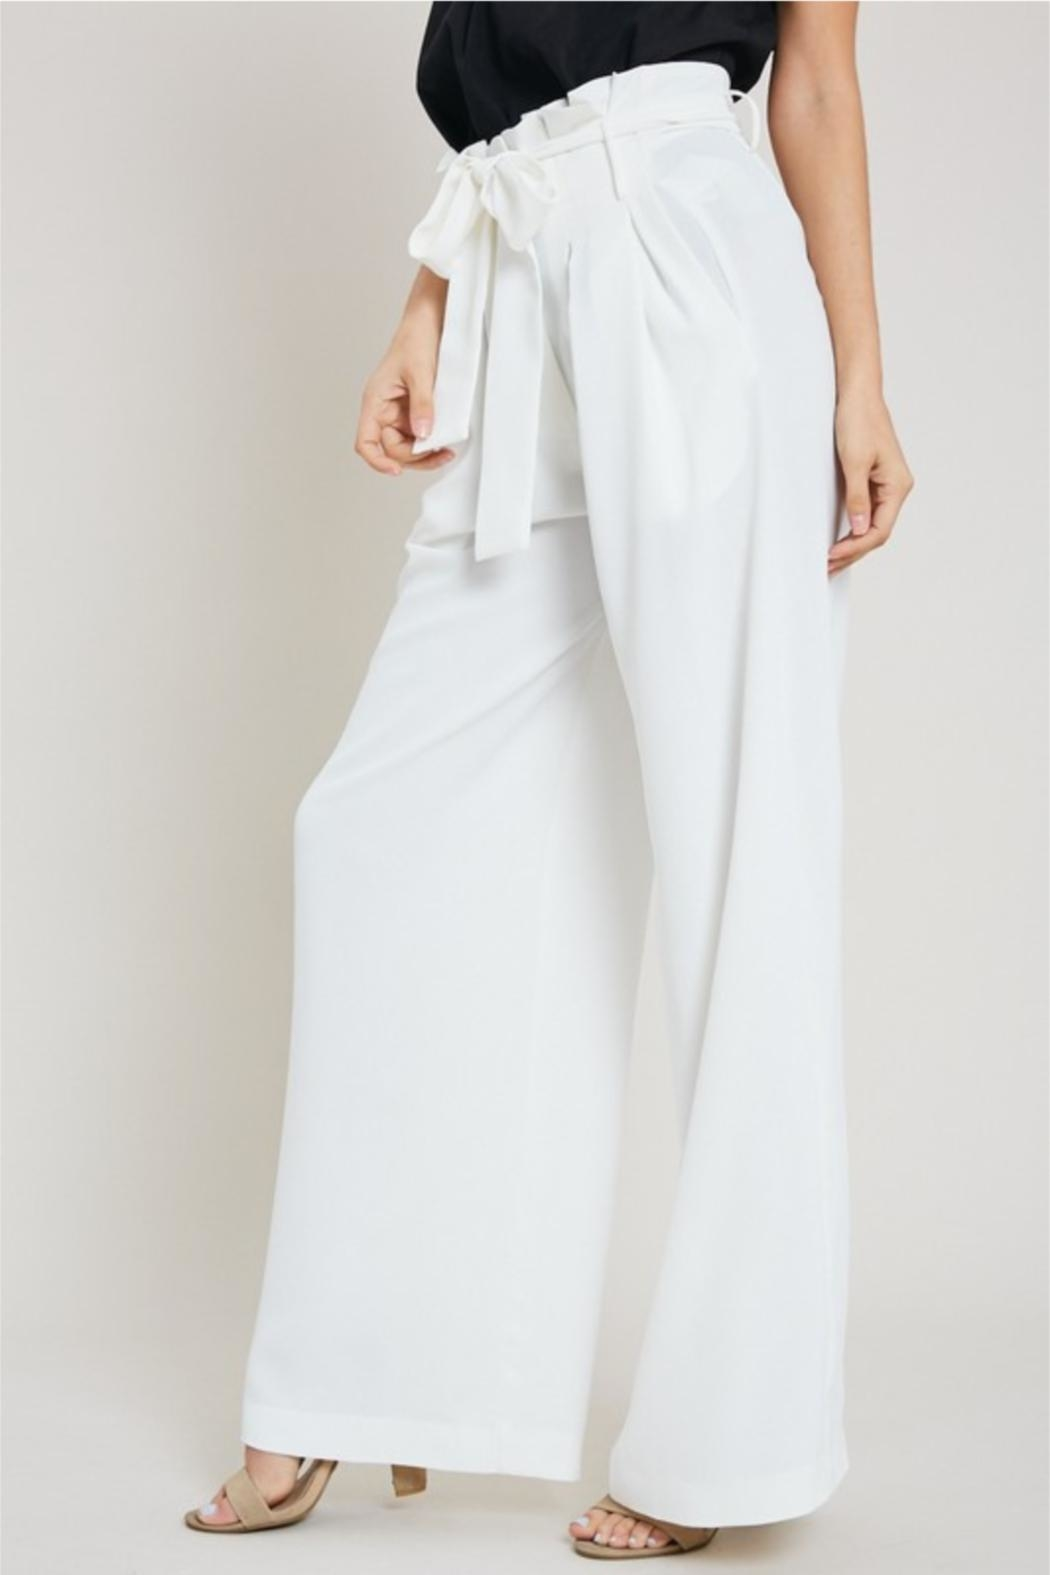 eesome White Dress Pants - Side Cropped Image